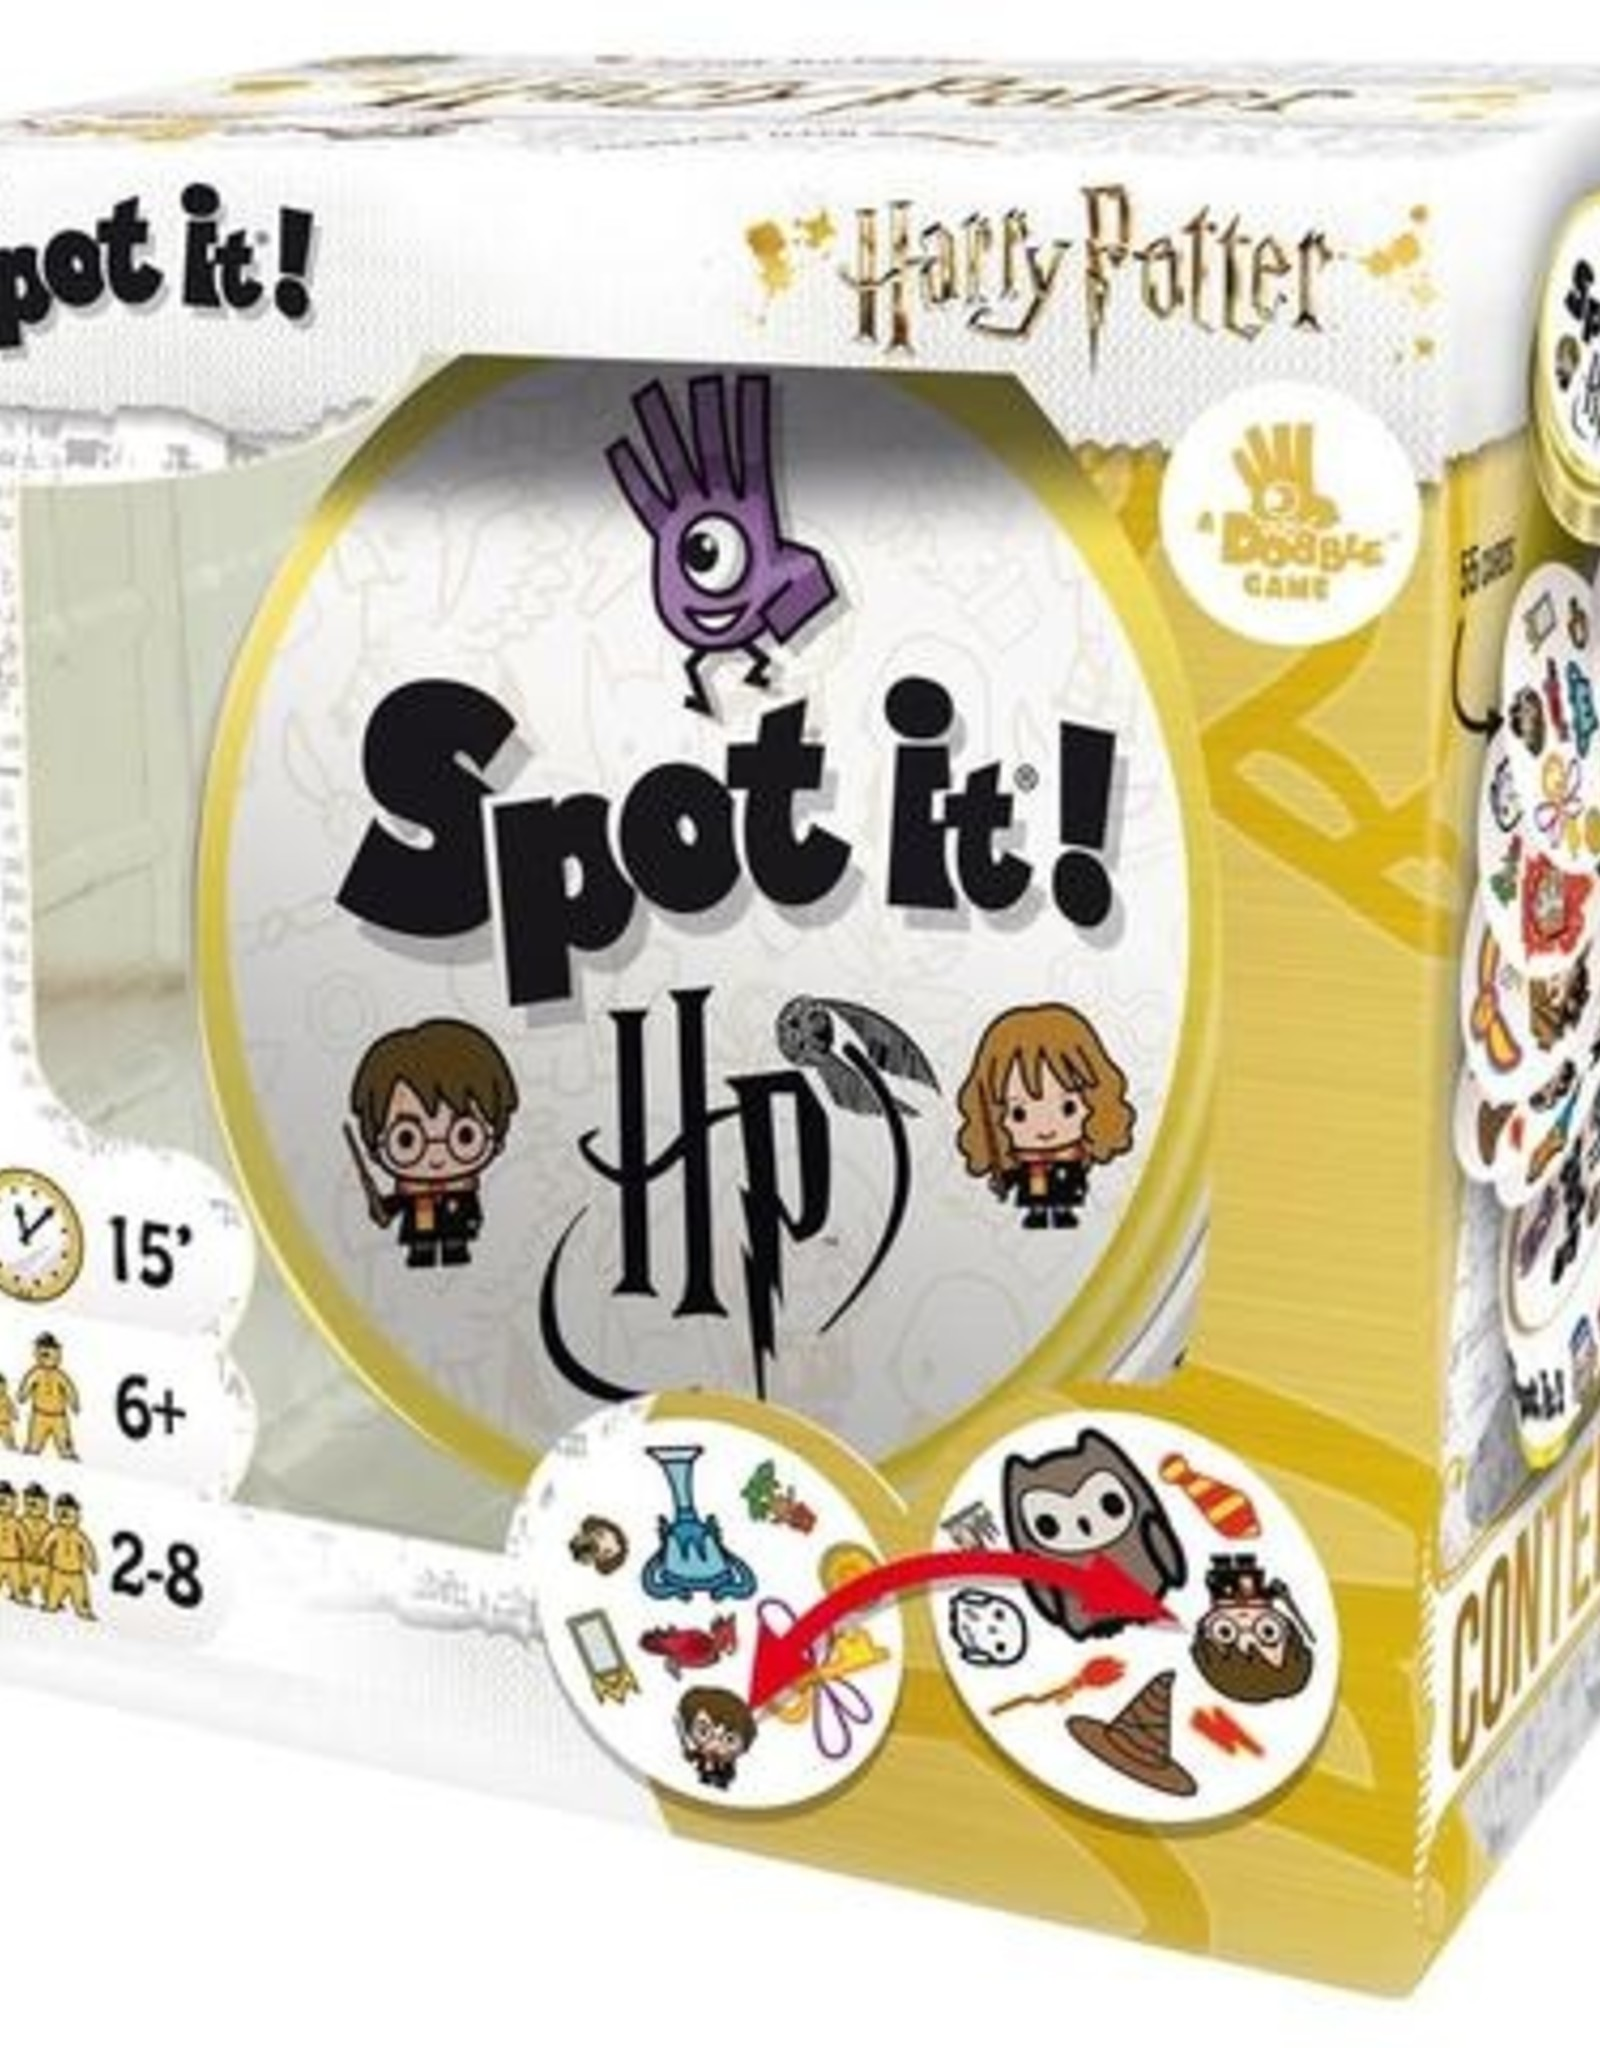 Spot It: Harry Potter